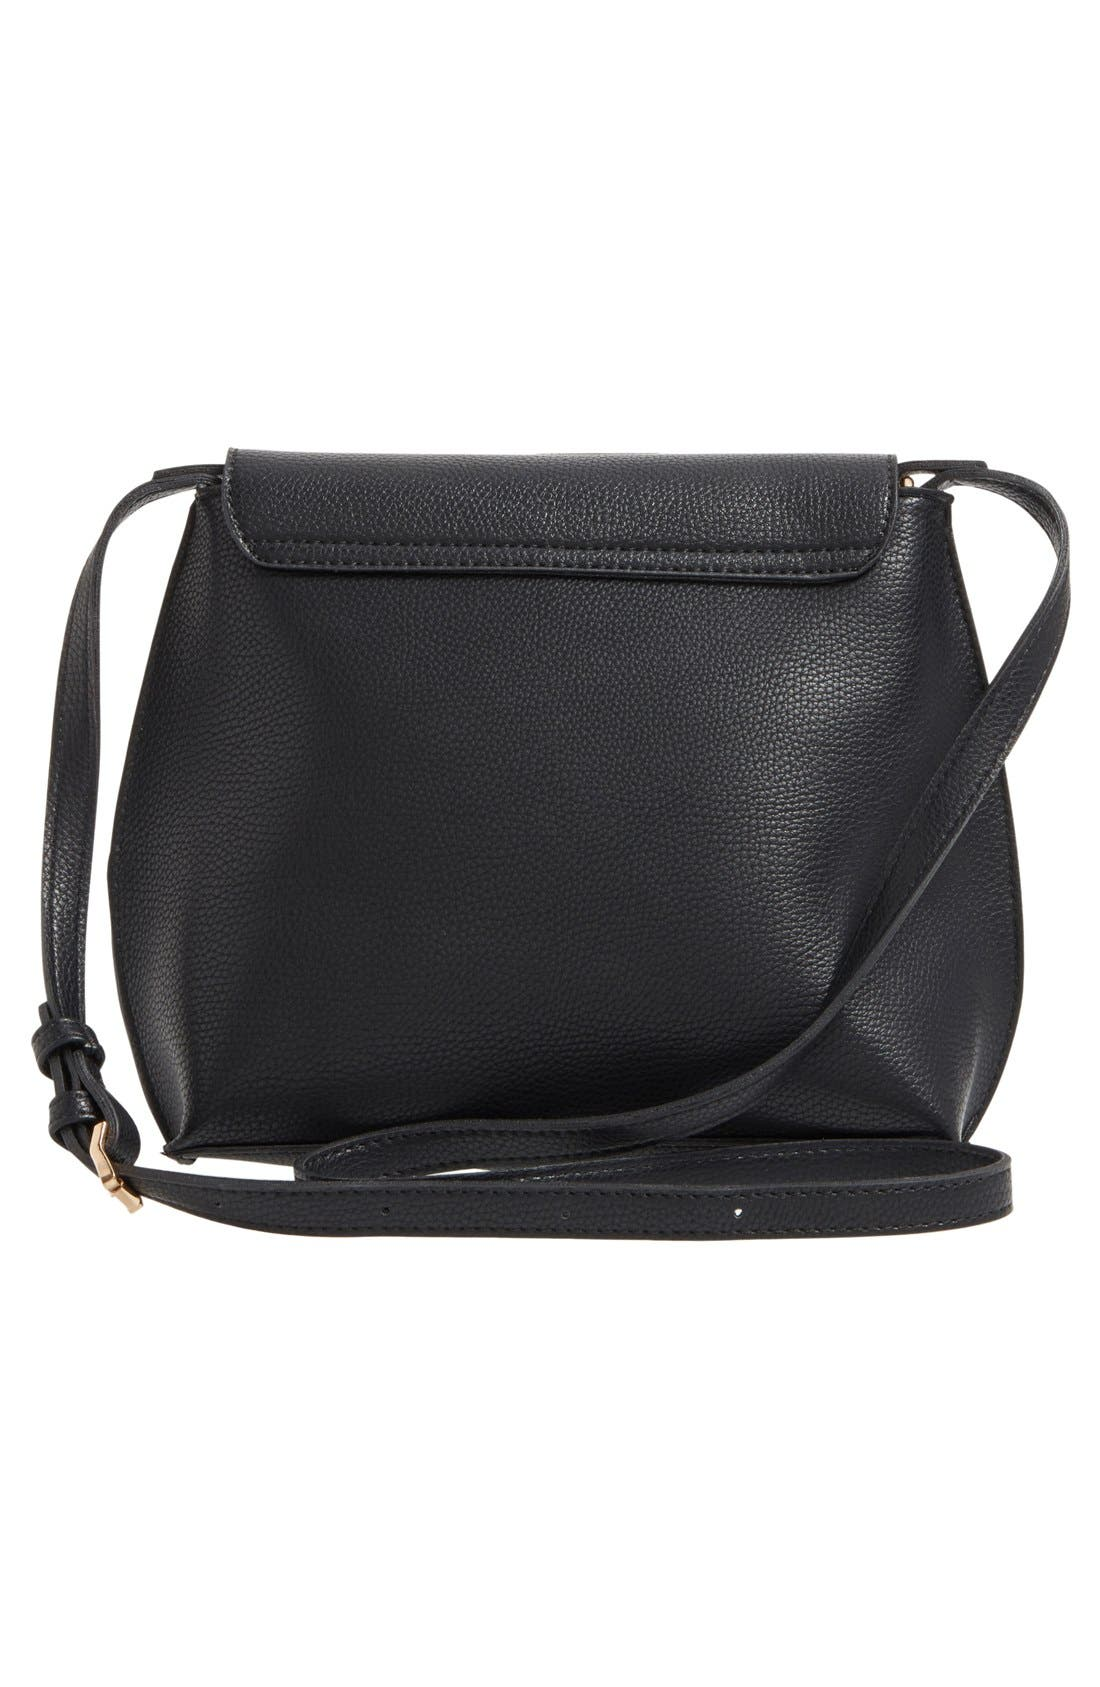 Alternate Image 3  - Sole Society Tassel Faux Leather Crossbody Bag